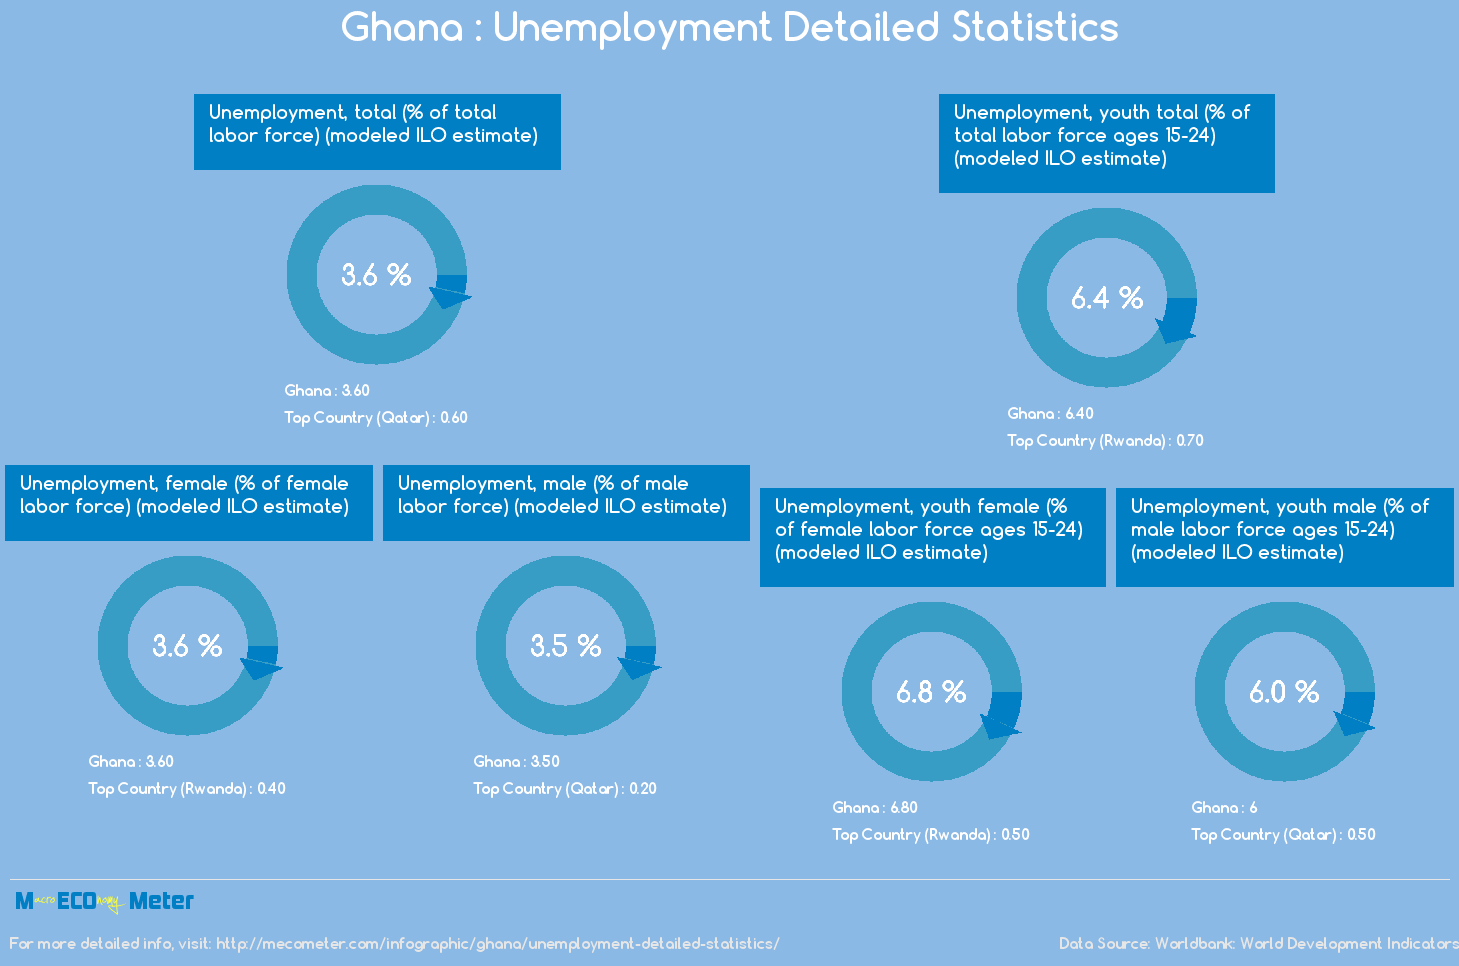 Ghana : Unemployment Detailed Statistics